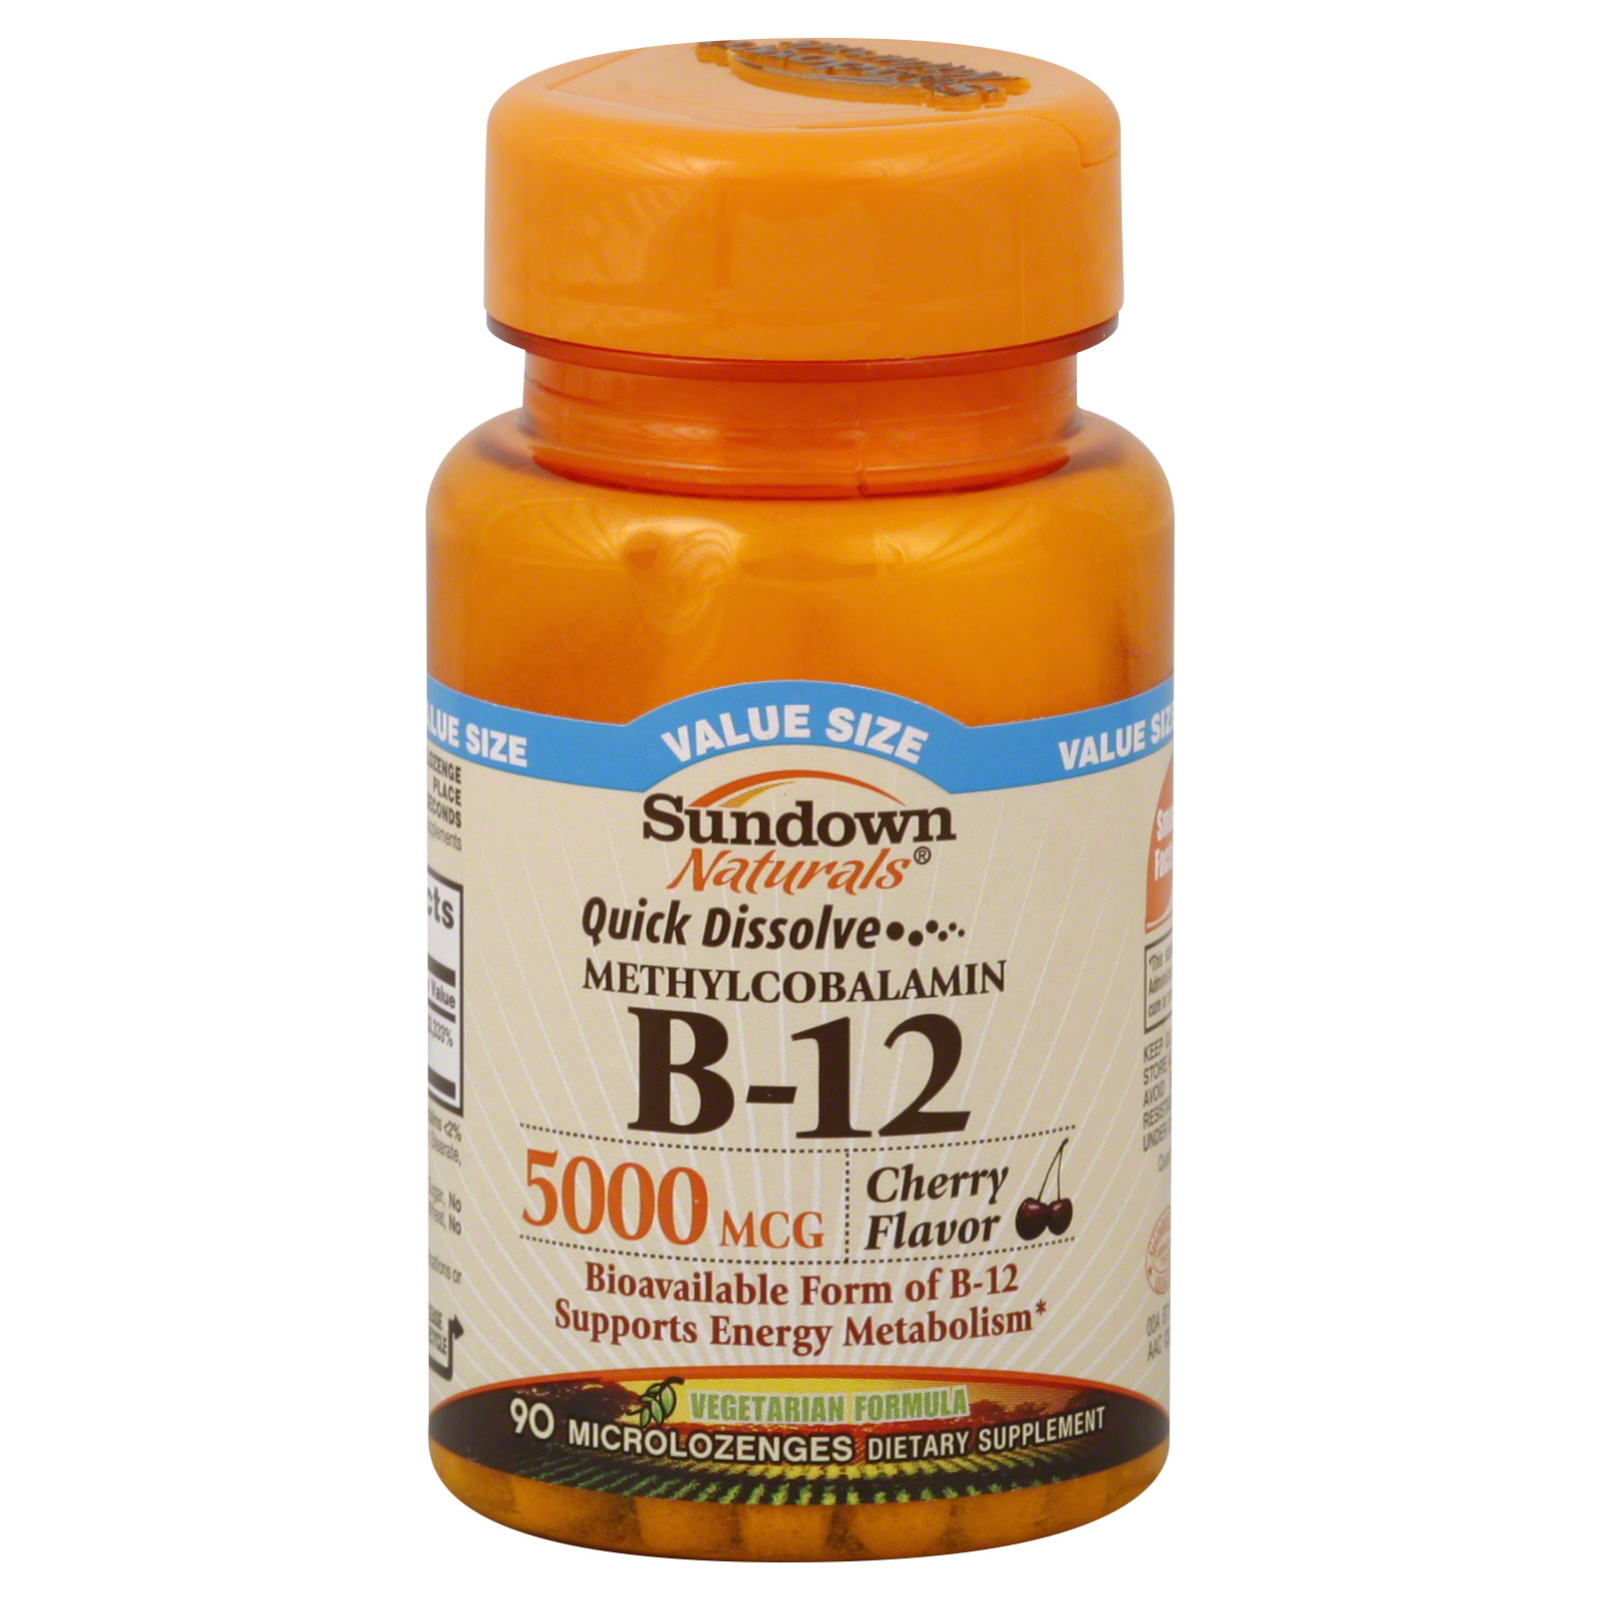 Sundown Vitamin B12, Methylcobalamin, 5000 mcg